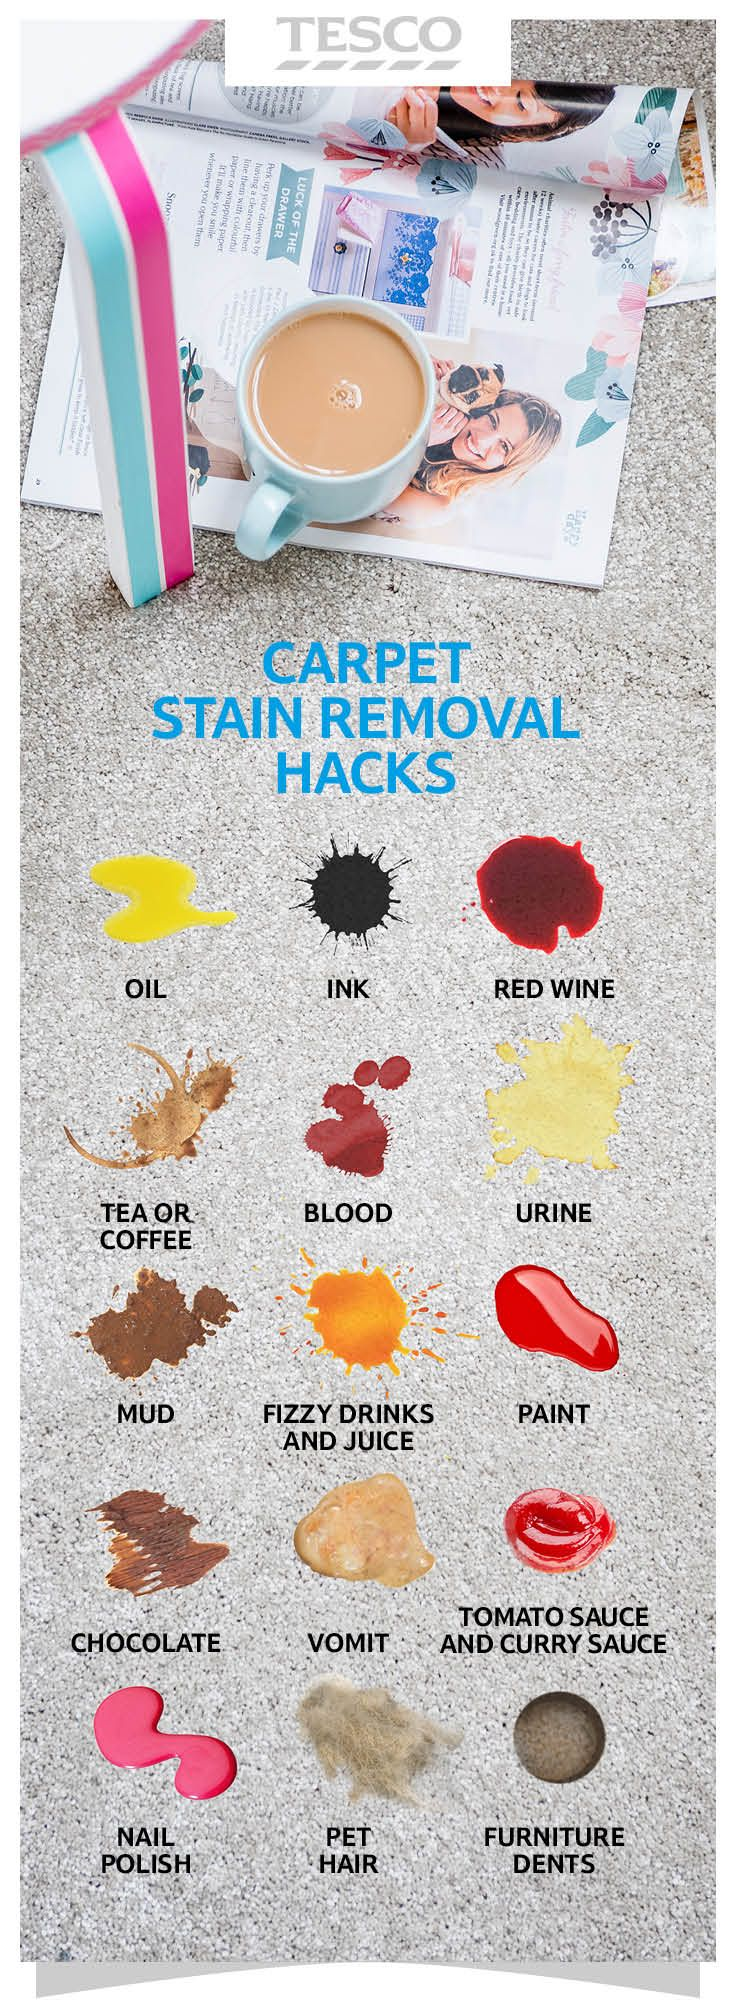 Uncategorized Carpet Ink Stain Removal 25 unique carpet stain removal ideas on pinterest diy spilt red wine the dont fret try our clever cleaning tips to quickly remove common household stains such as tea